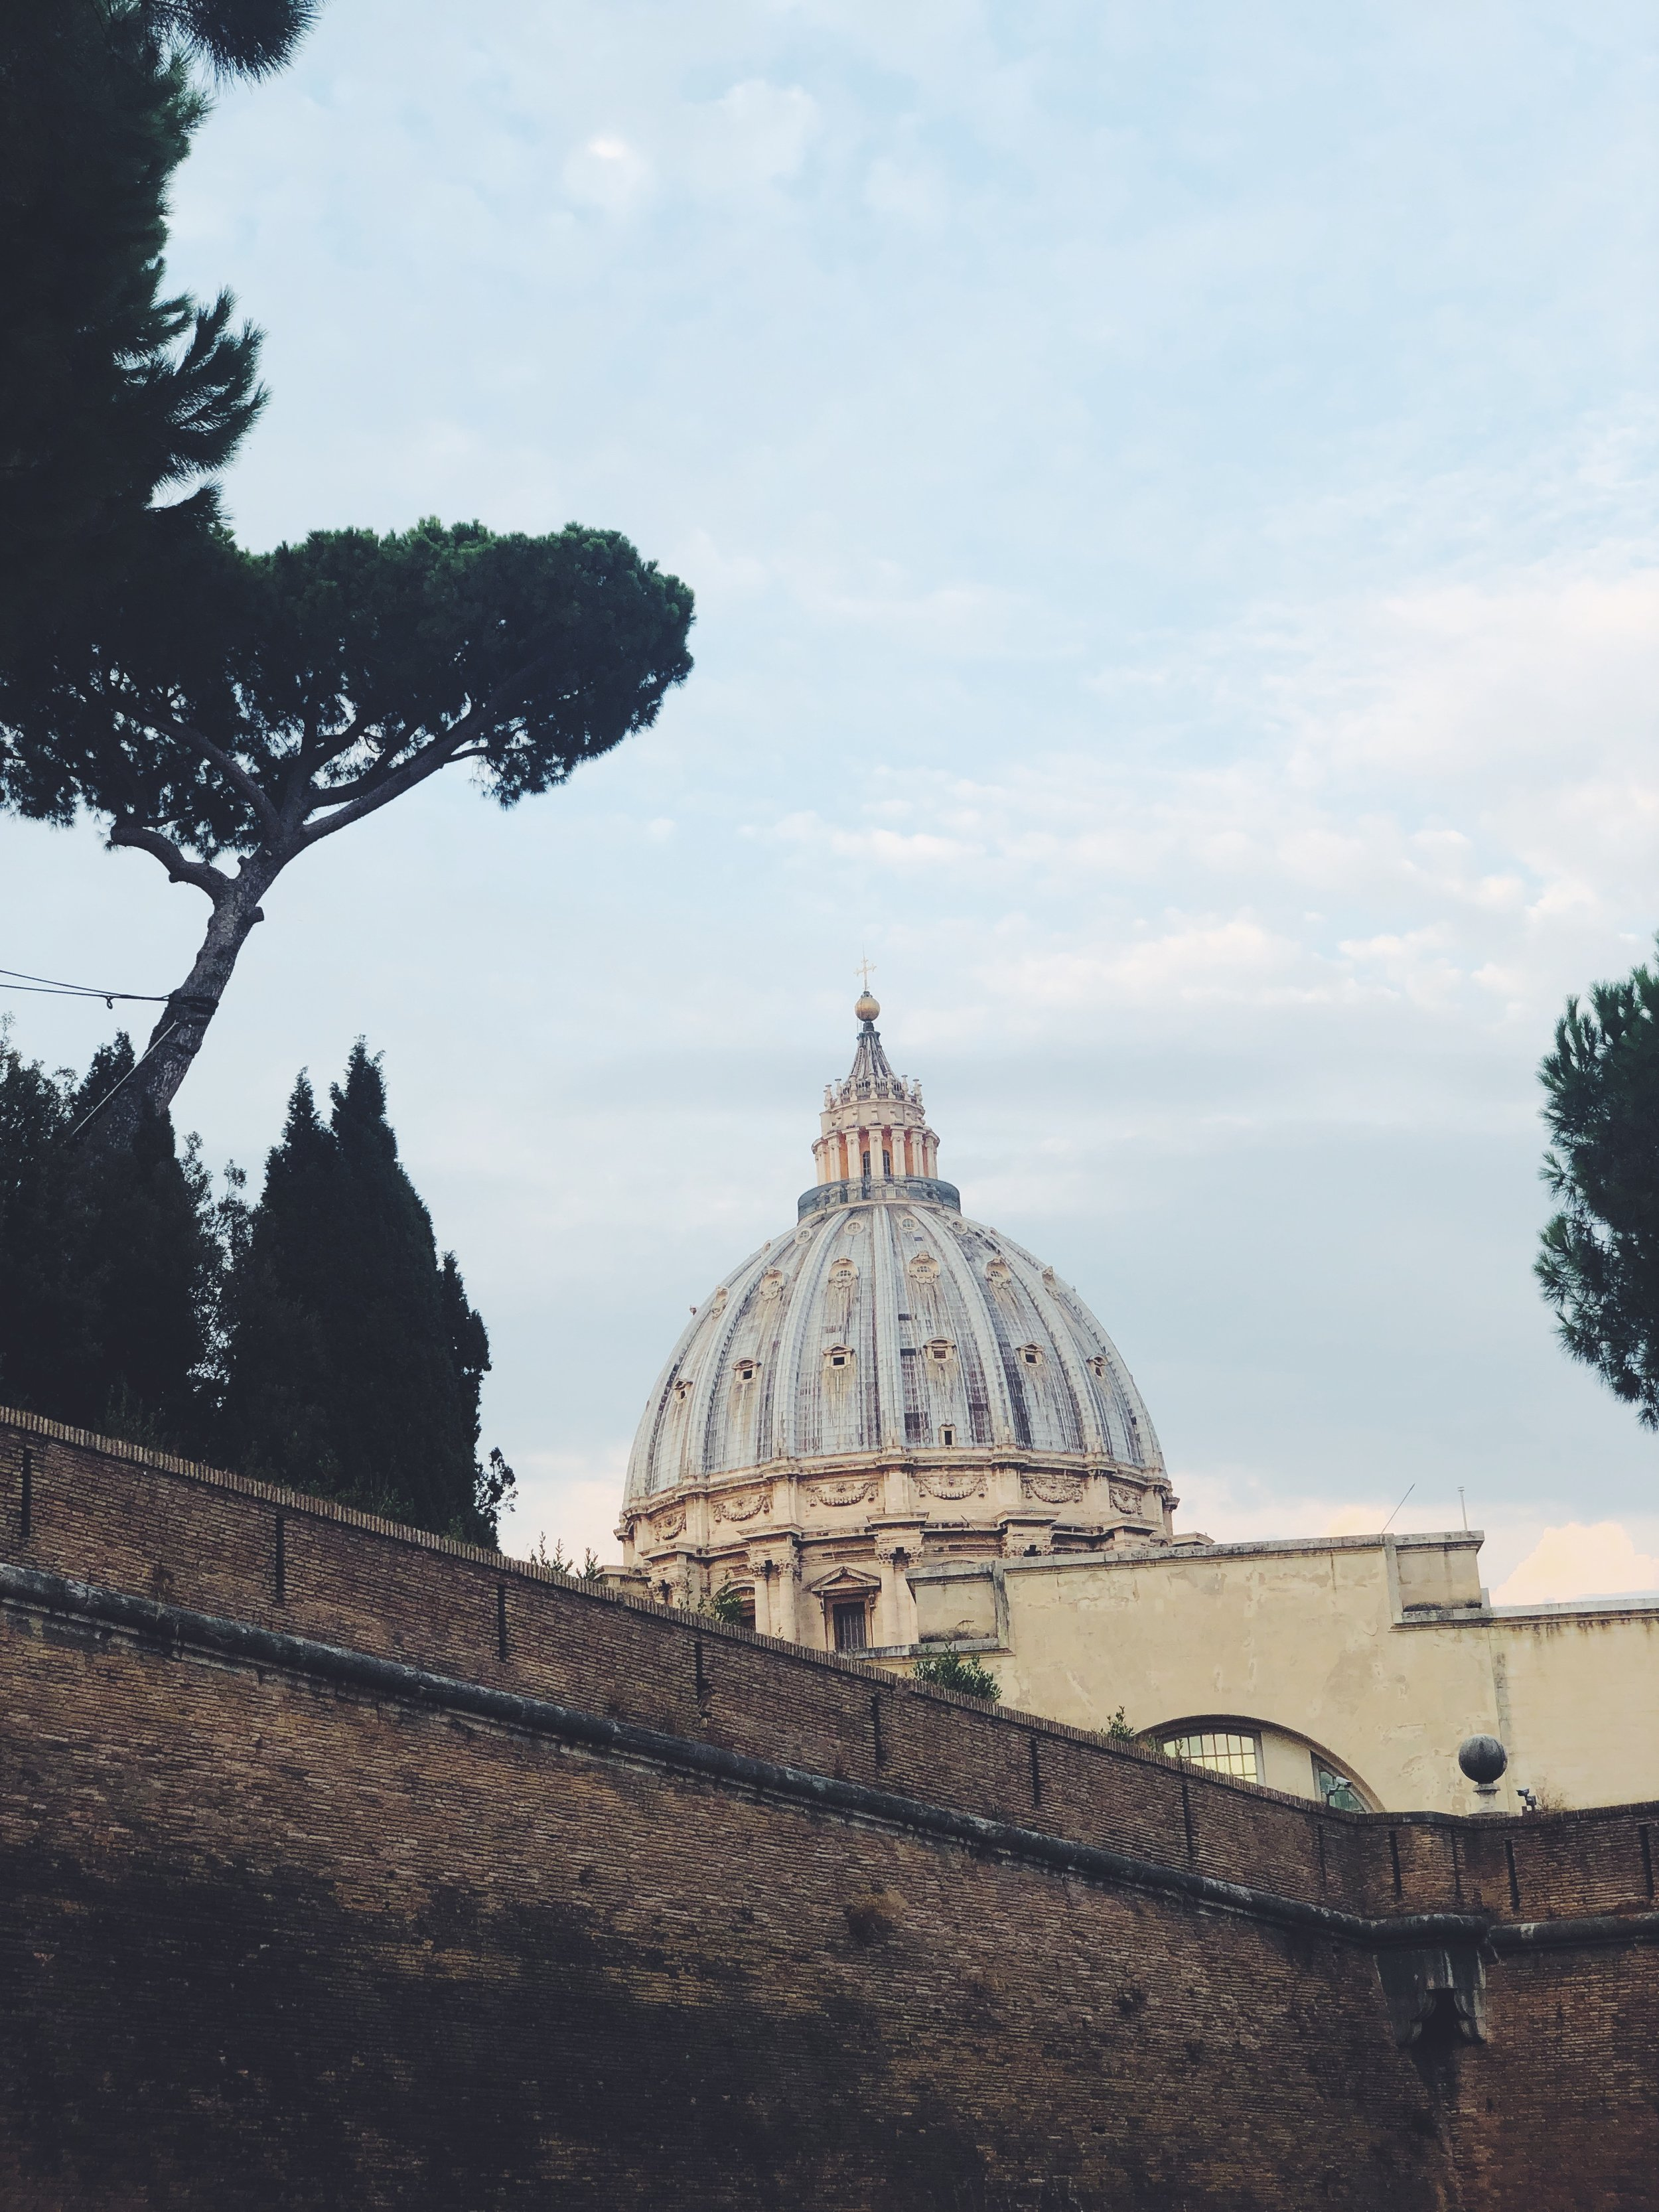 St Peter's Basilica from Outside the Walls of the Vatican